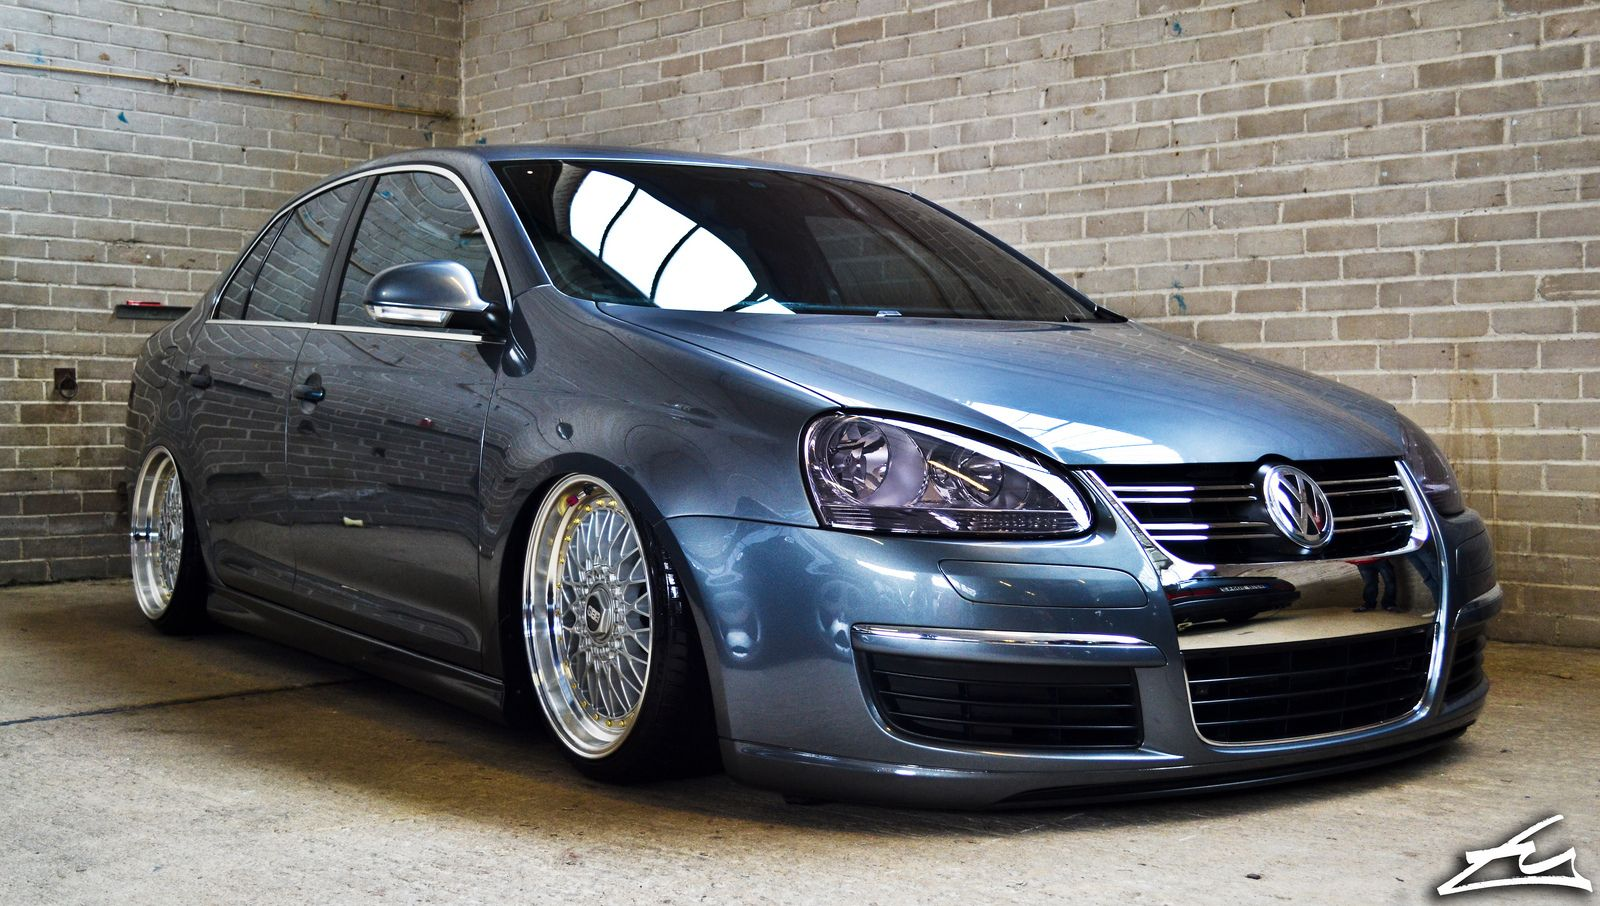 tunning tuning jetta mk5 tuning 1 vw pinterest volkswagen volkswagen jetta and cars. Black Bedroom Furniture Sets. Home Design Ideas